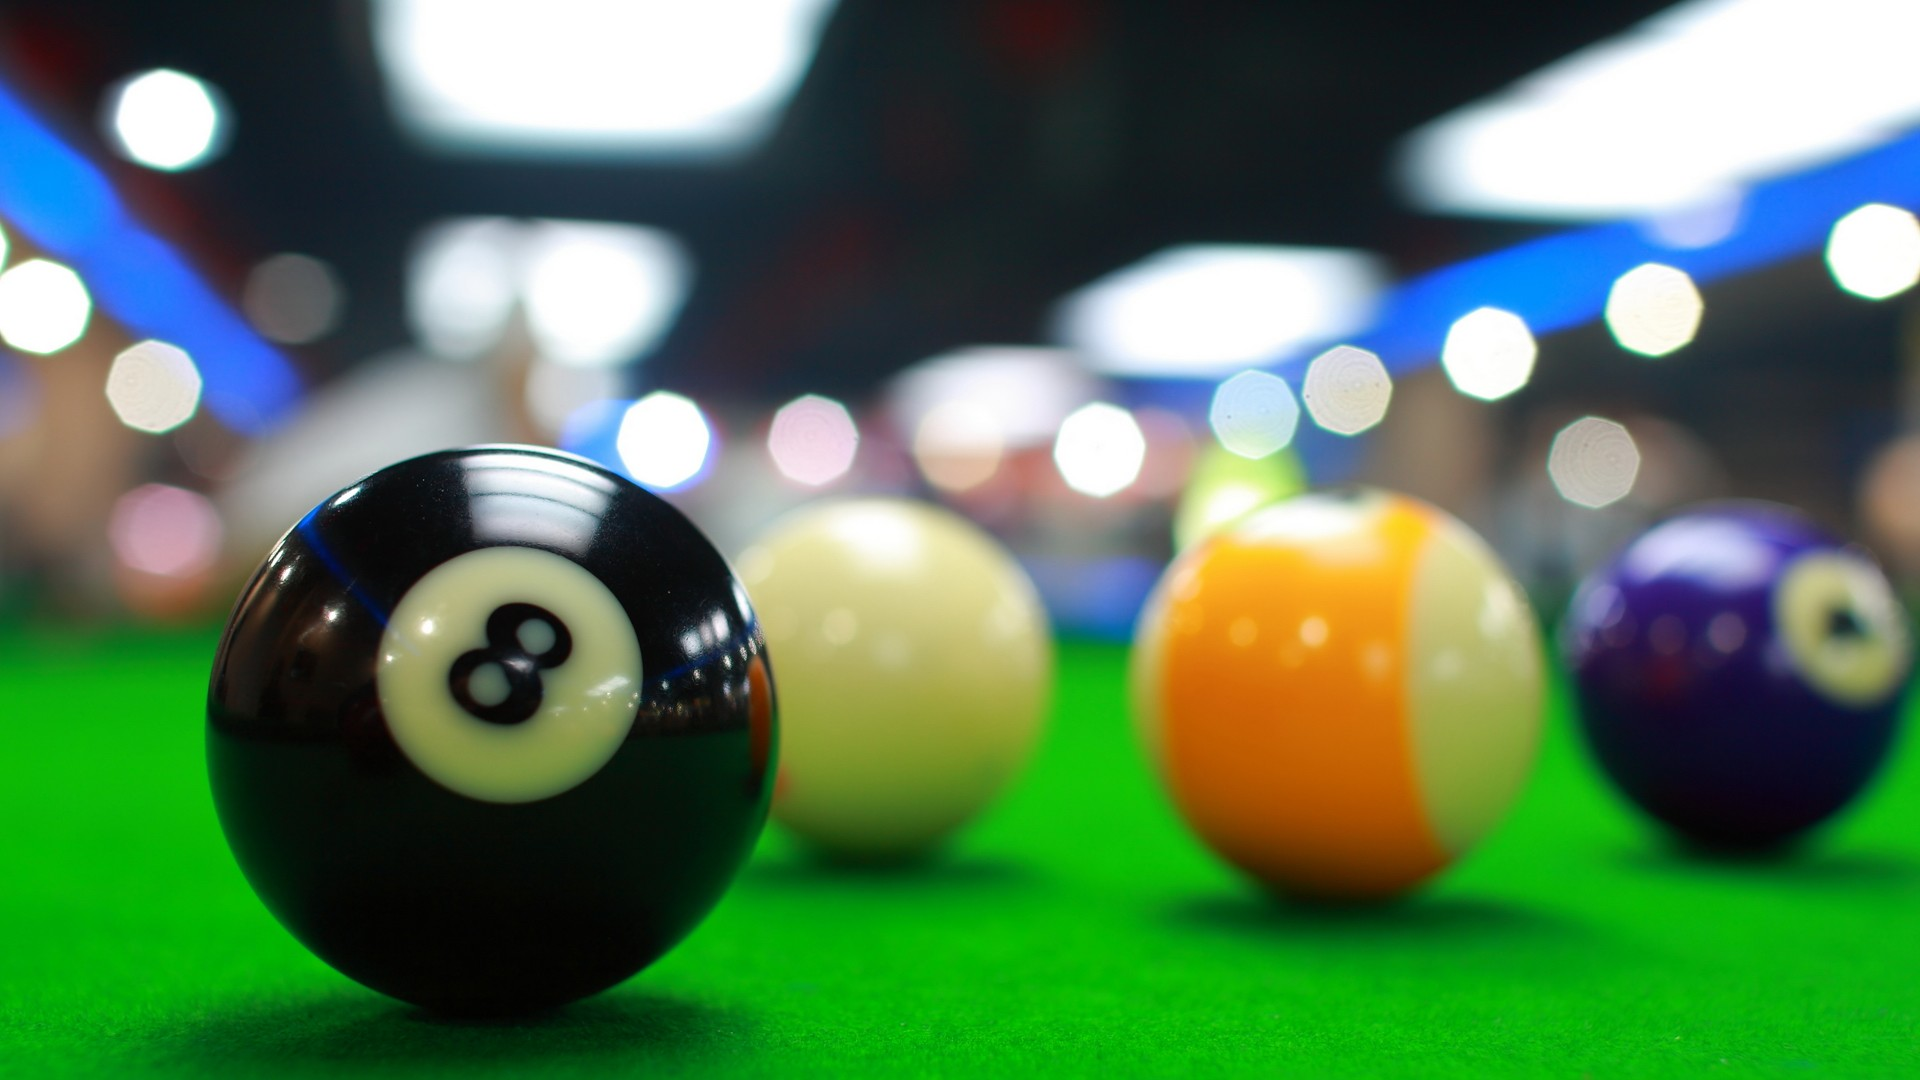 Billiards; Billiards Picture; Billiards Wallpaper; Billiards Wallpaper ...